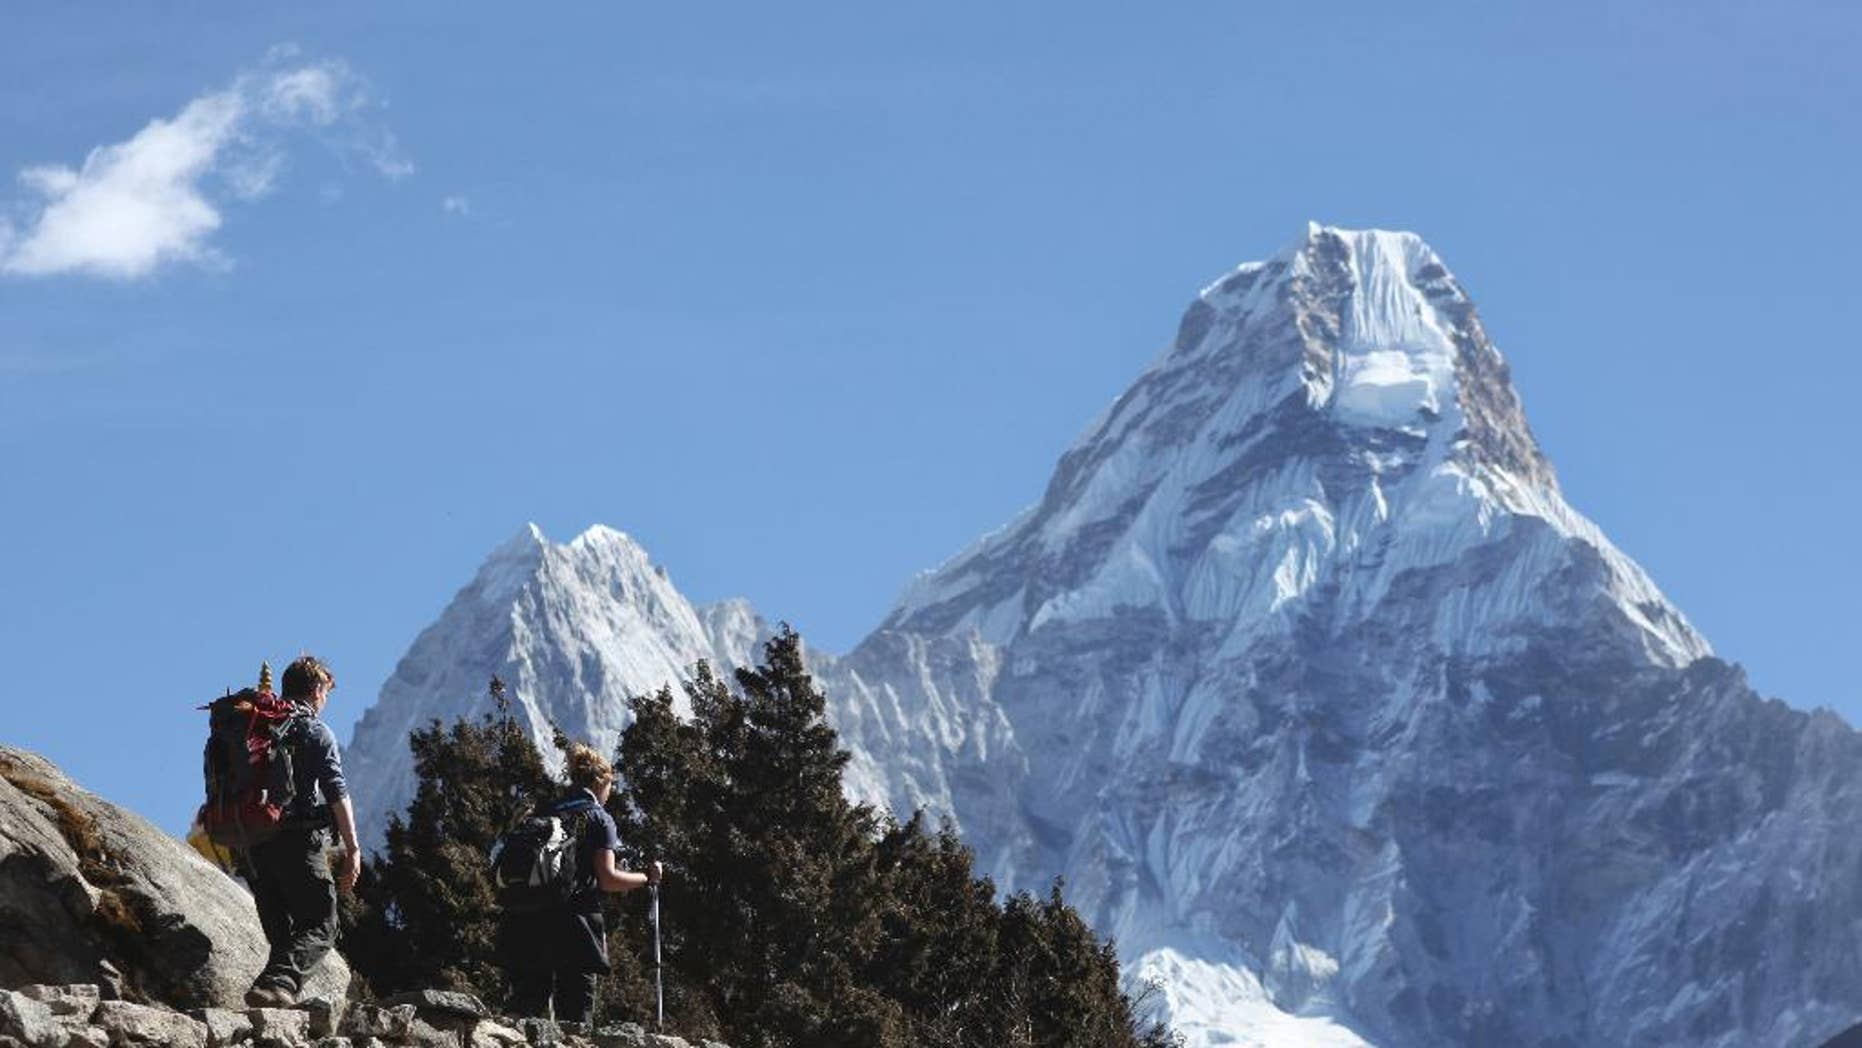 FILE - In this Feb. 19, 2016, file photo, trekkers make their way to Dingboche, a popular Mount Everest base camp, in Pangboche, Nepal. Officials say three foreign climbers; two British Kenton Cool, Robert Richard Lucas, and Mexican David Liano Gonzalez along with three Nepalese guides have scaled Mount Everest, the first foreigners to reach the summit in two years. (AP Photo/Tashi Sherpa, File)